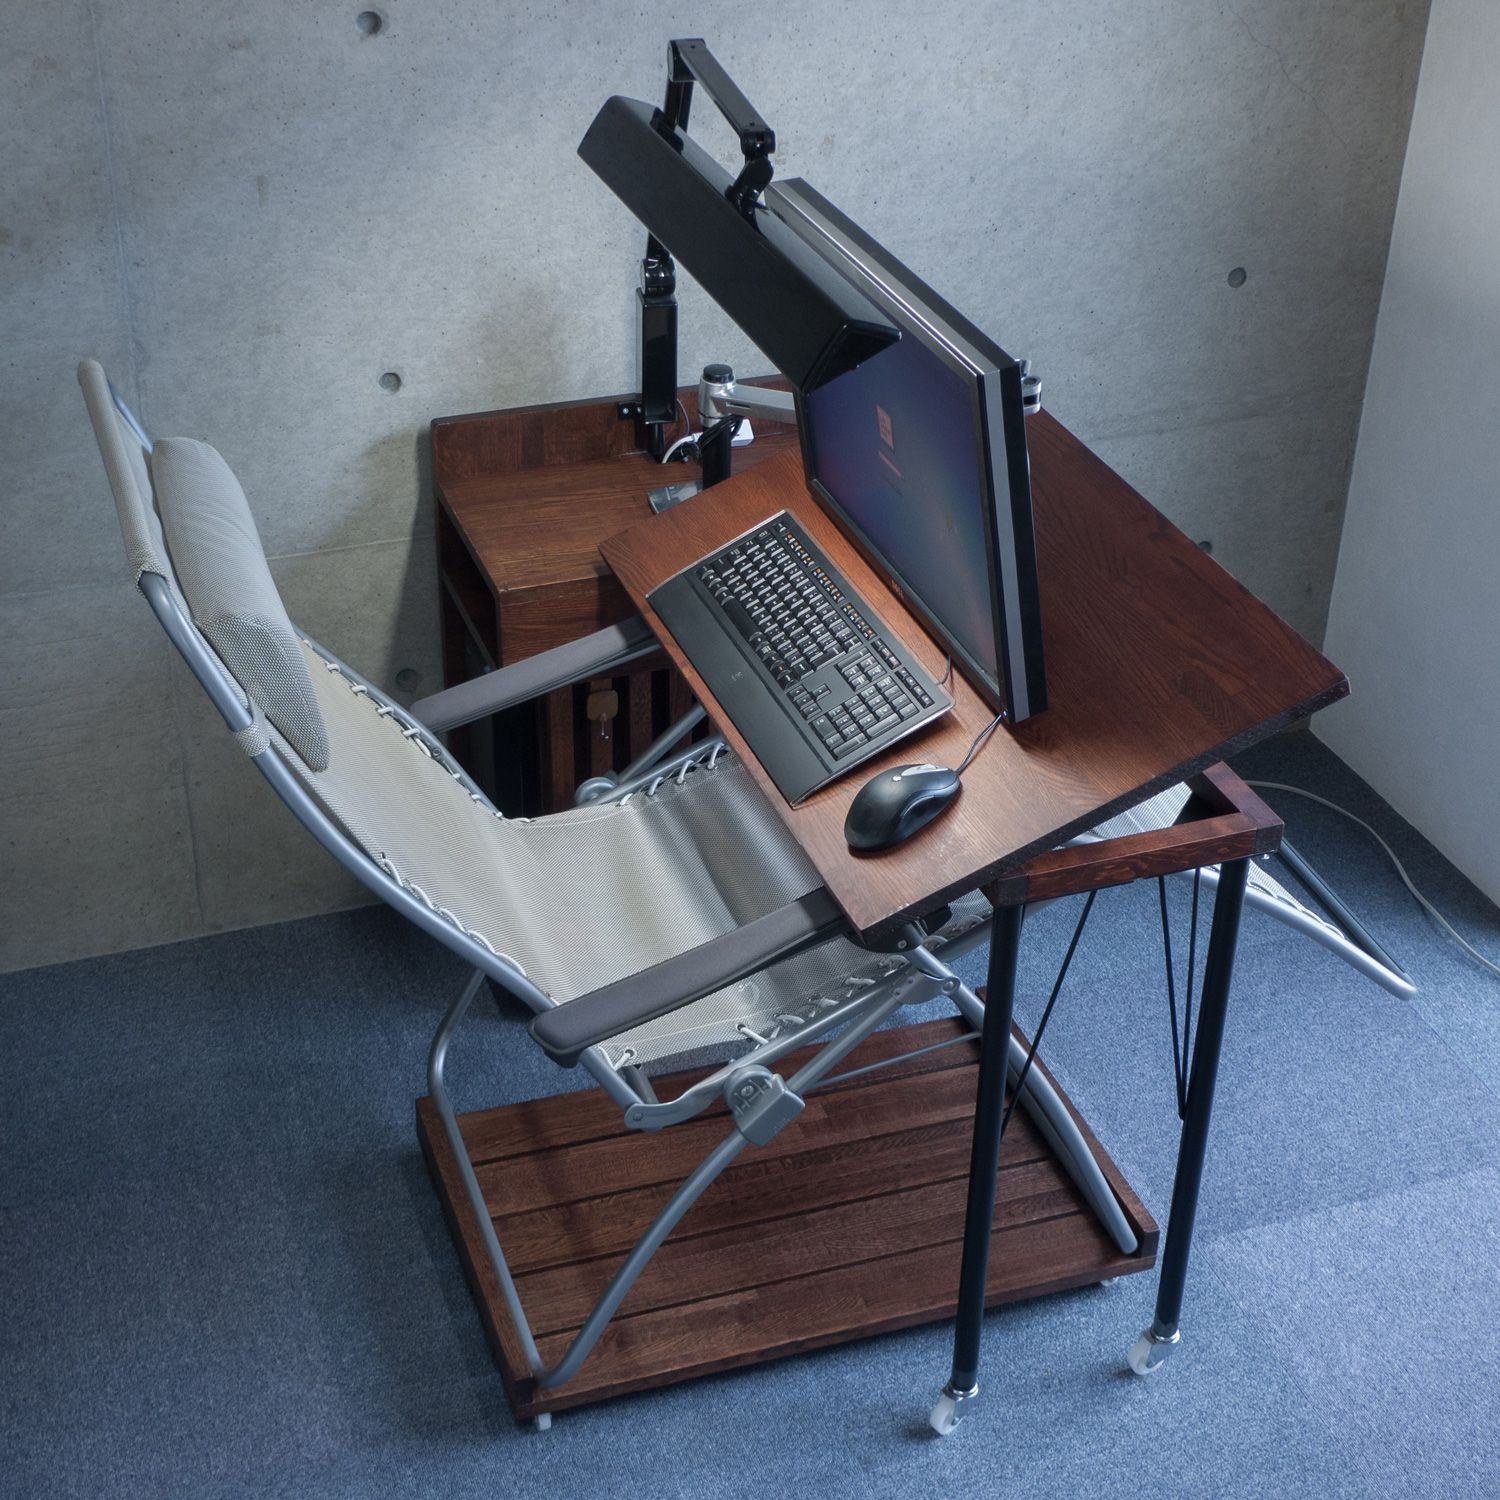 Diy Desk Keyboard Tray Pc Desk That Can Desk Work On Recliner Chairs Keyboard